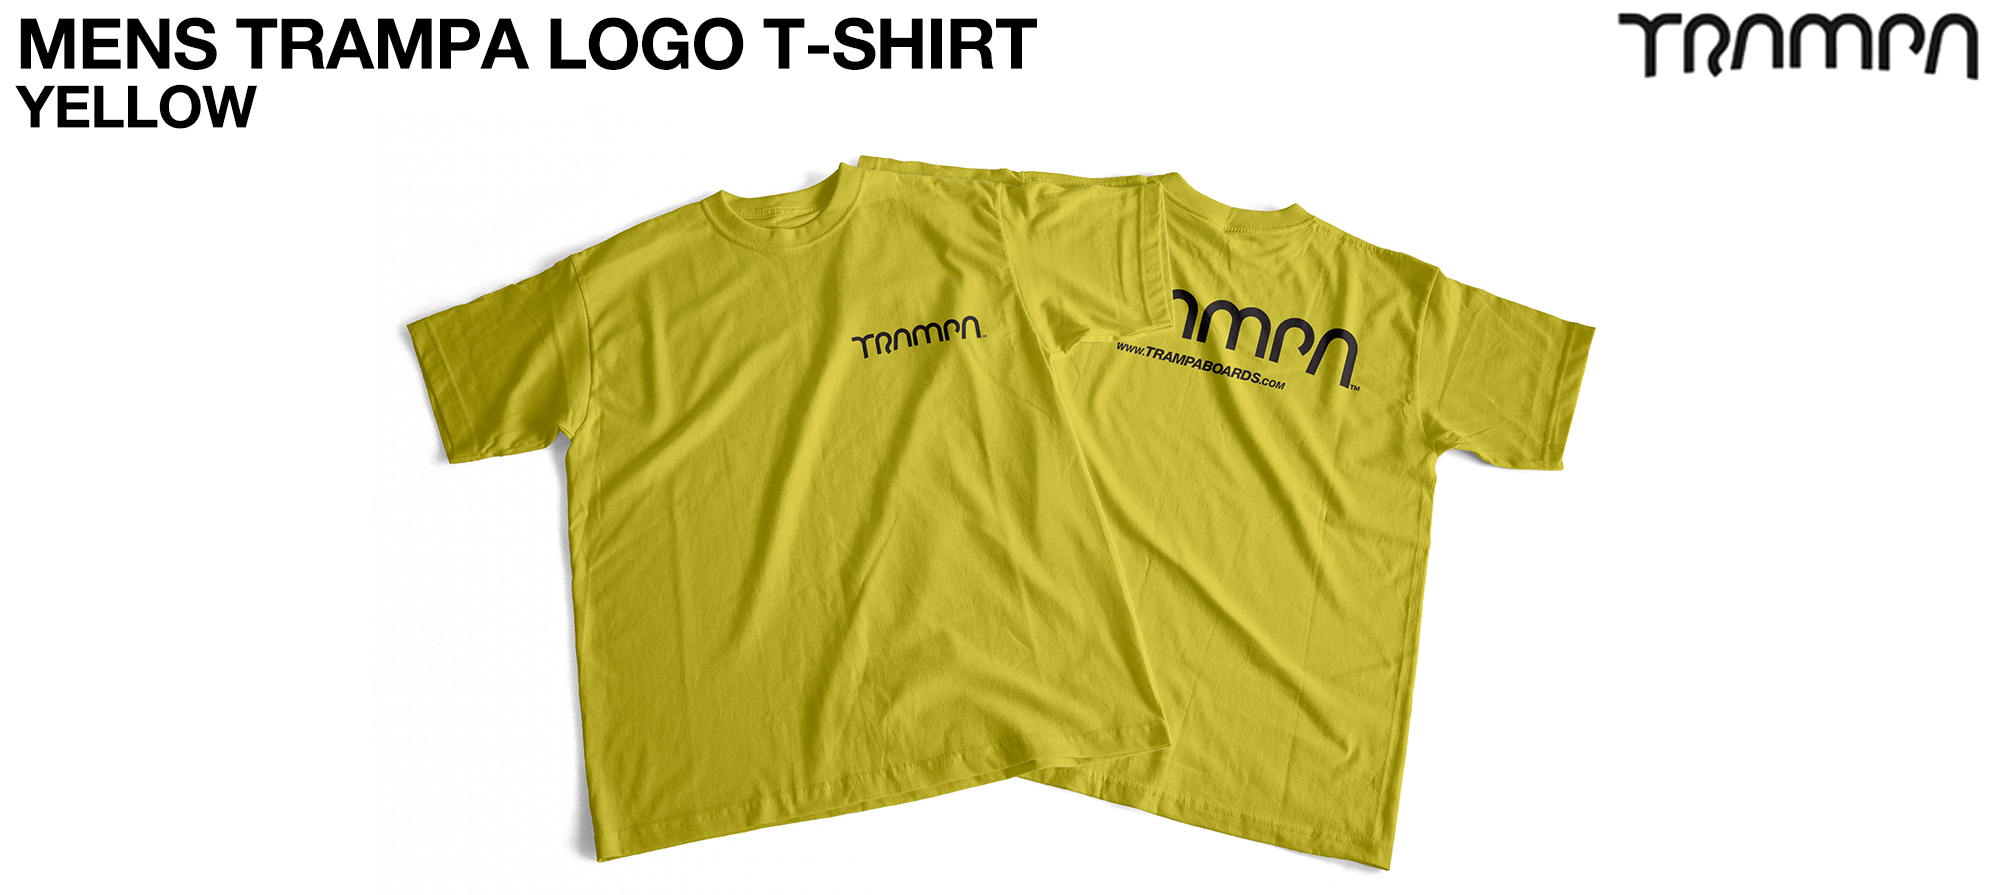 Gildan T  TRAMPA LOGO Yellow - CUSTOM (COPY)